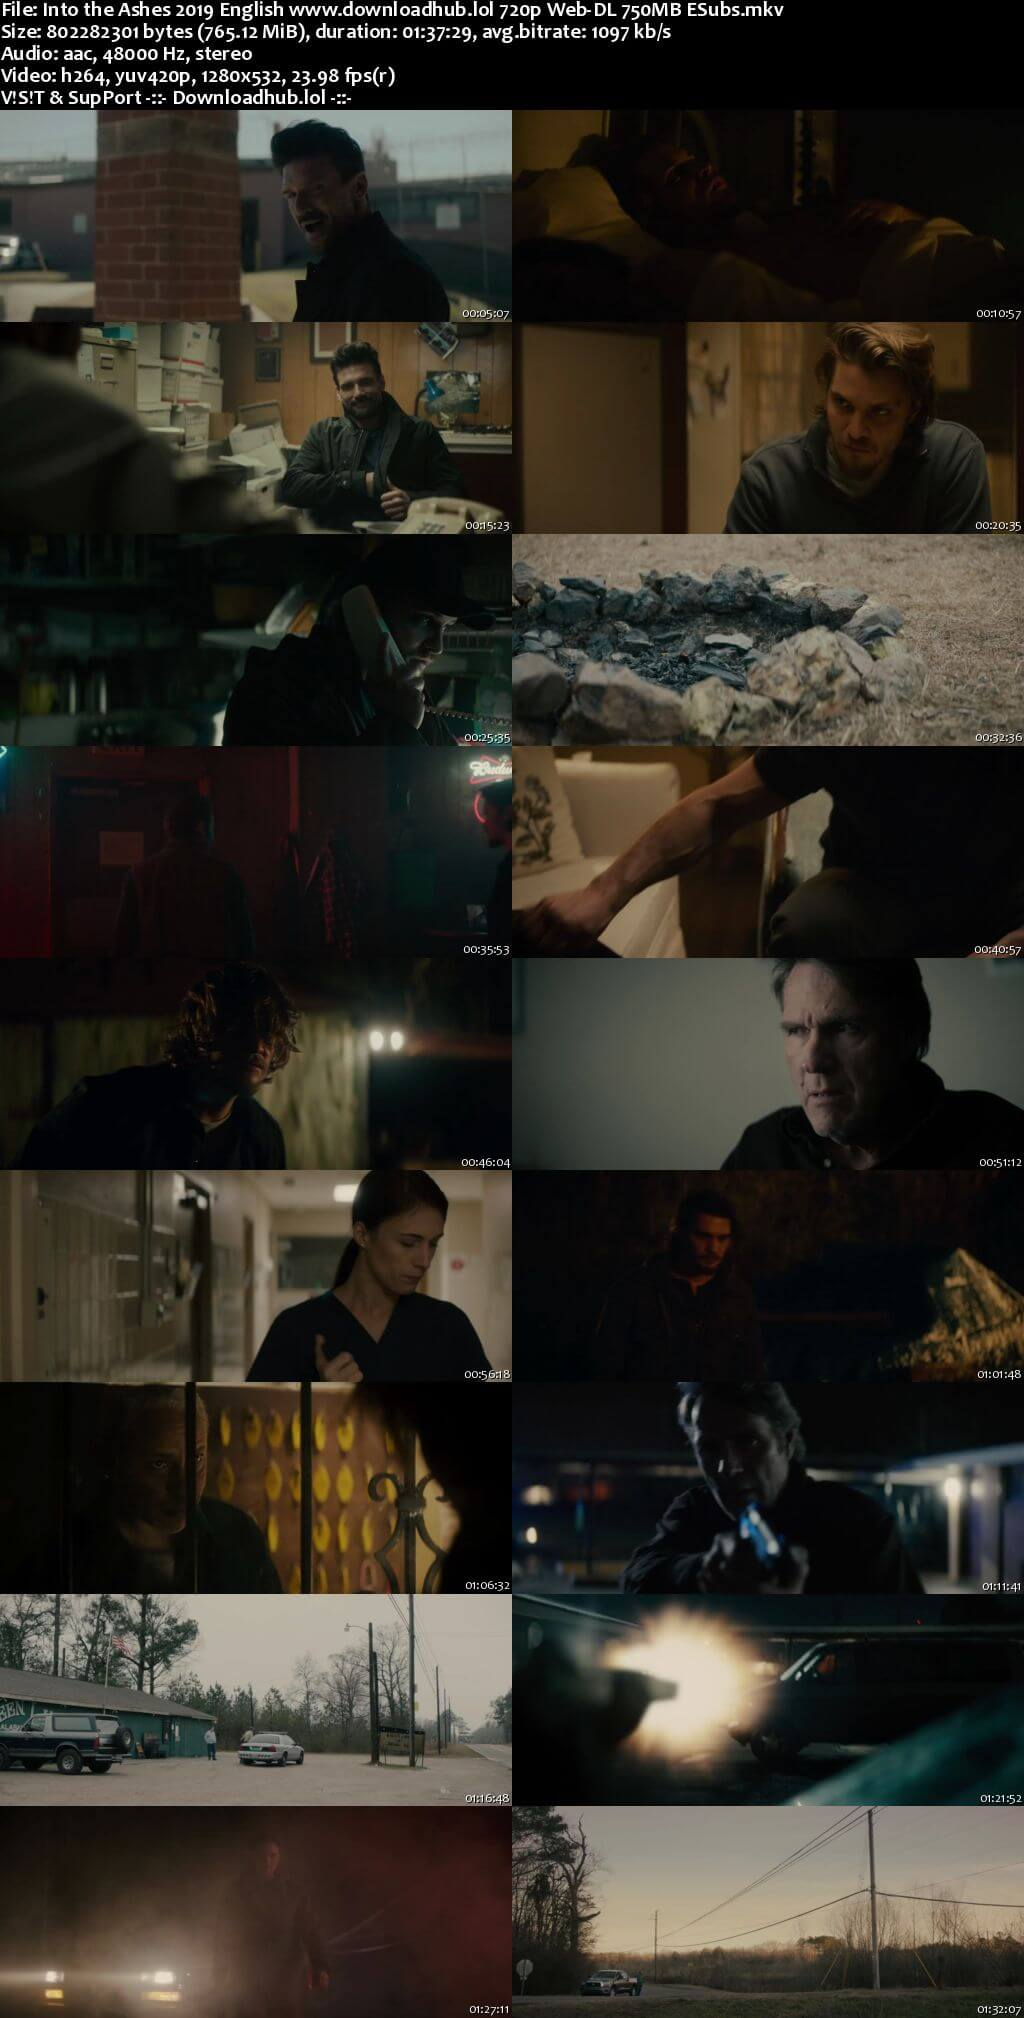 Into the Ashes 2019 English 720p Web-DL 750MB ESubs